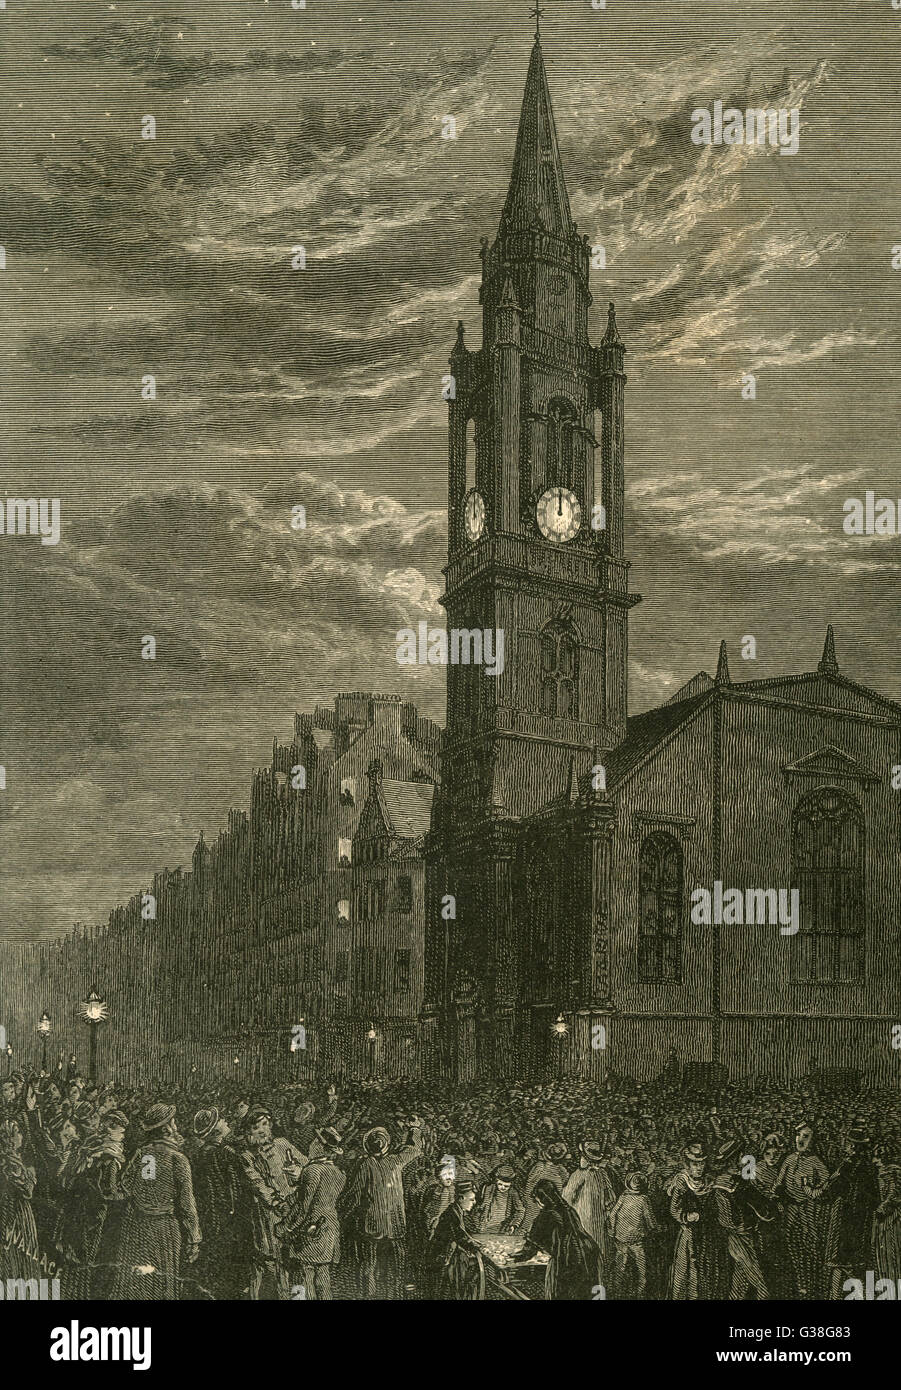 SCOTTISH NEW YEAR Crowds throng the streets  round the Tron Church,  Edinburgh       Date: 1870 - Stock Image